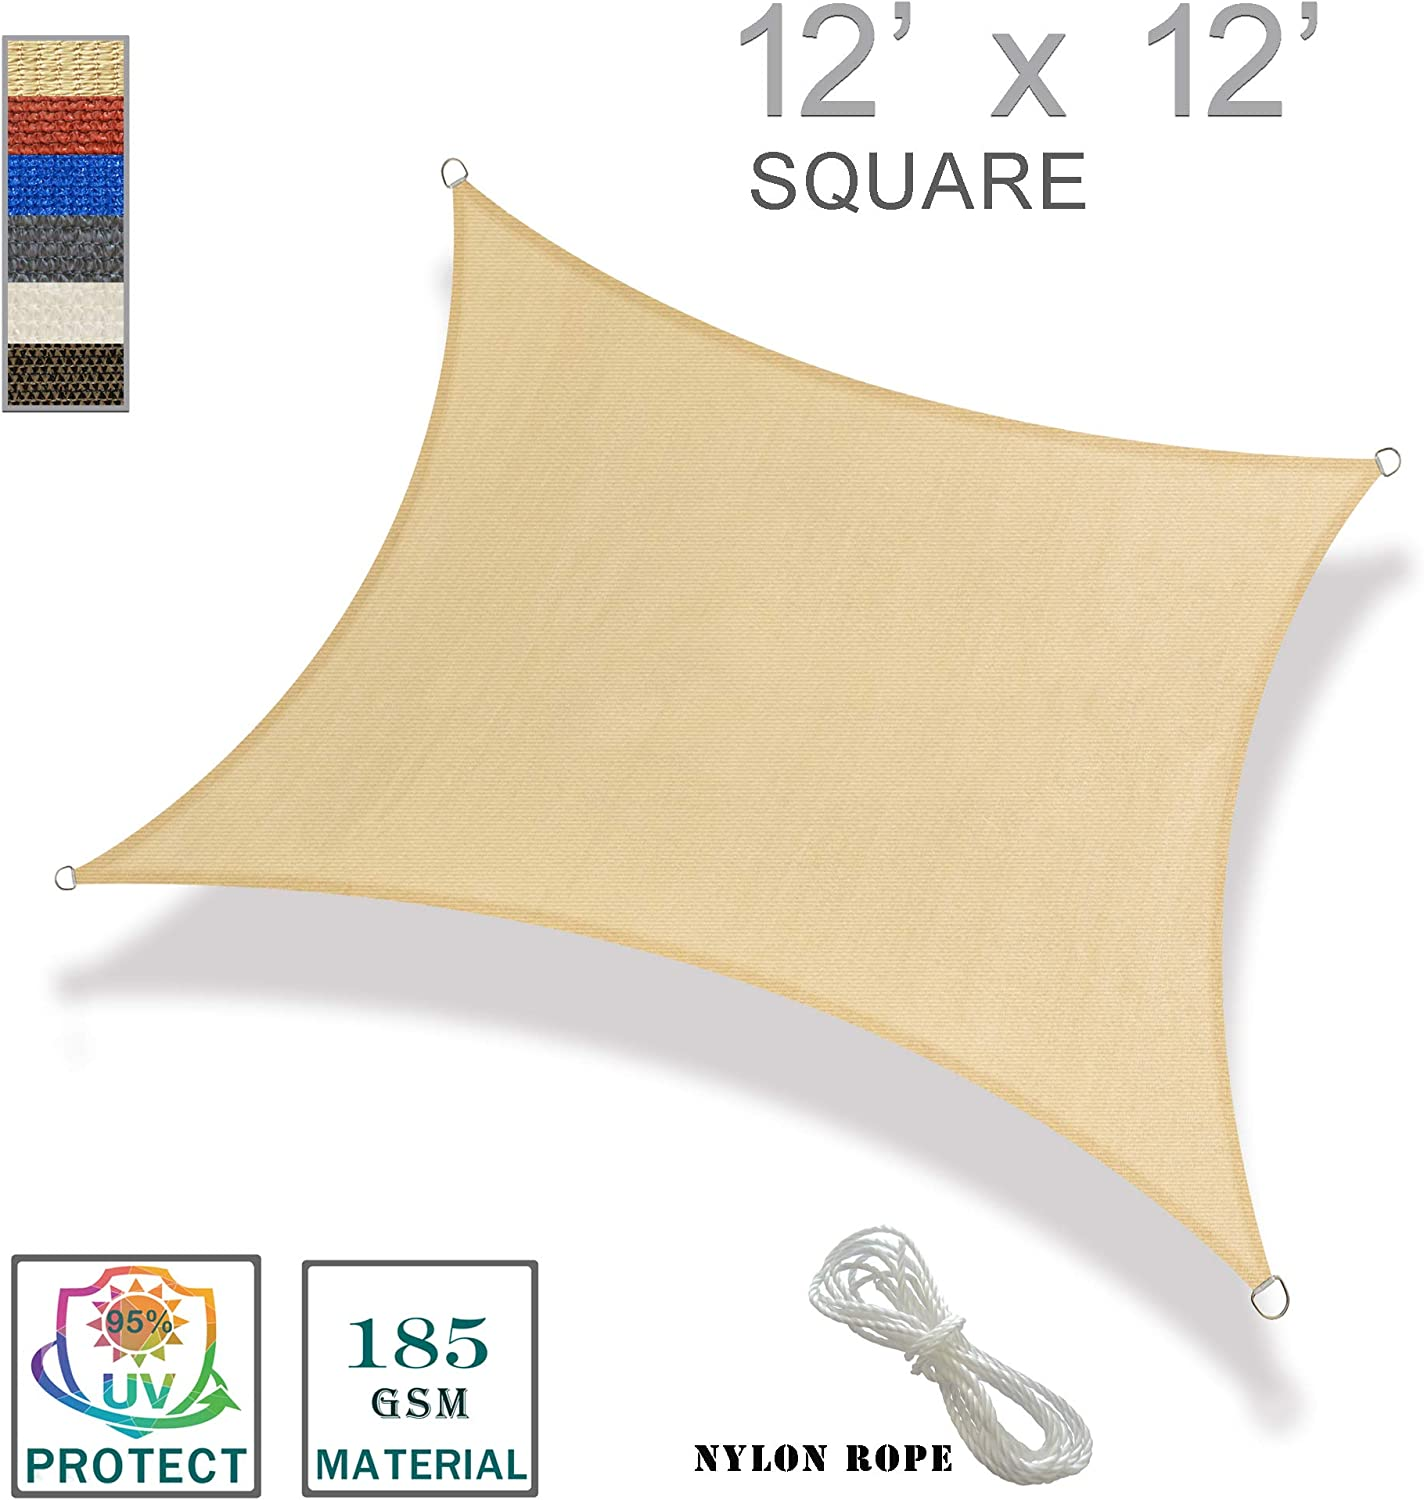 SUNNY GUARD 12' x 12' Sand Square Sun Shade Sail UV Block for Outdoor Patio Garden